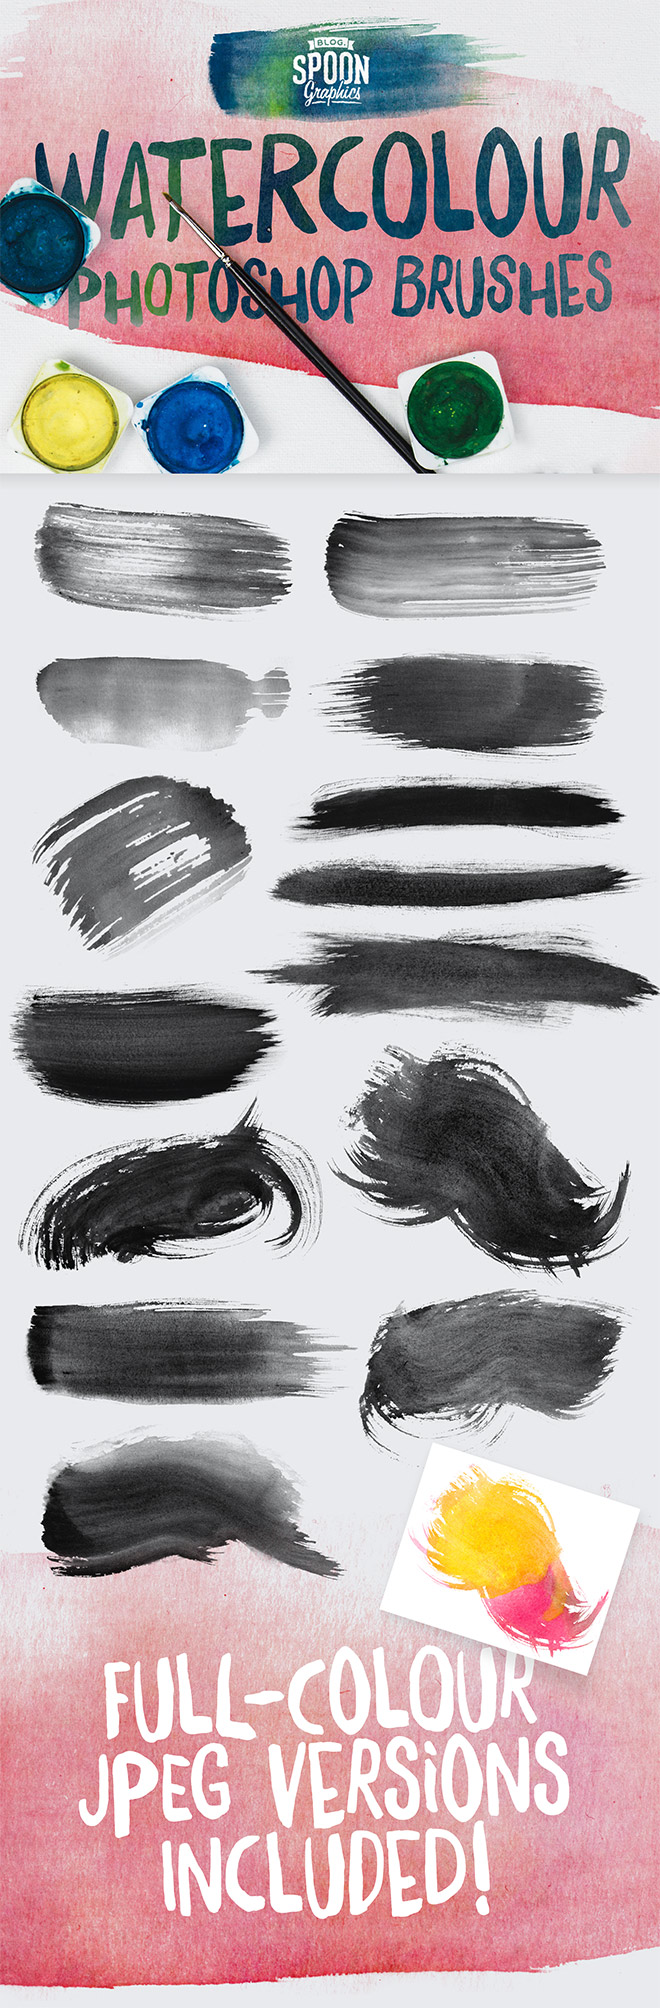 14 Free Watercolour Brushes for Adobe Photoshop